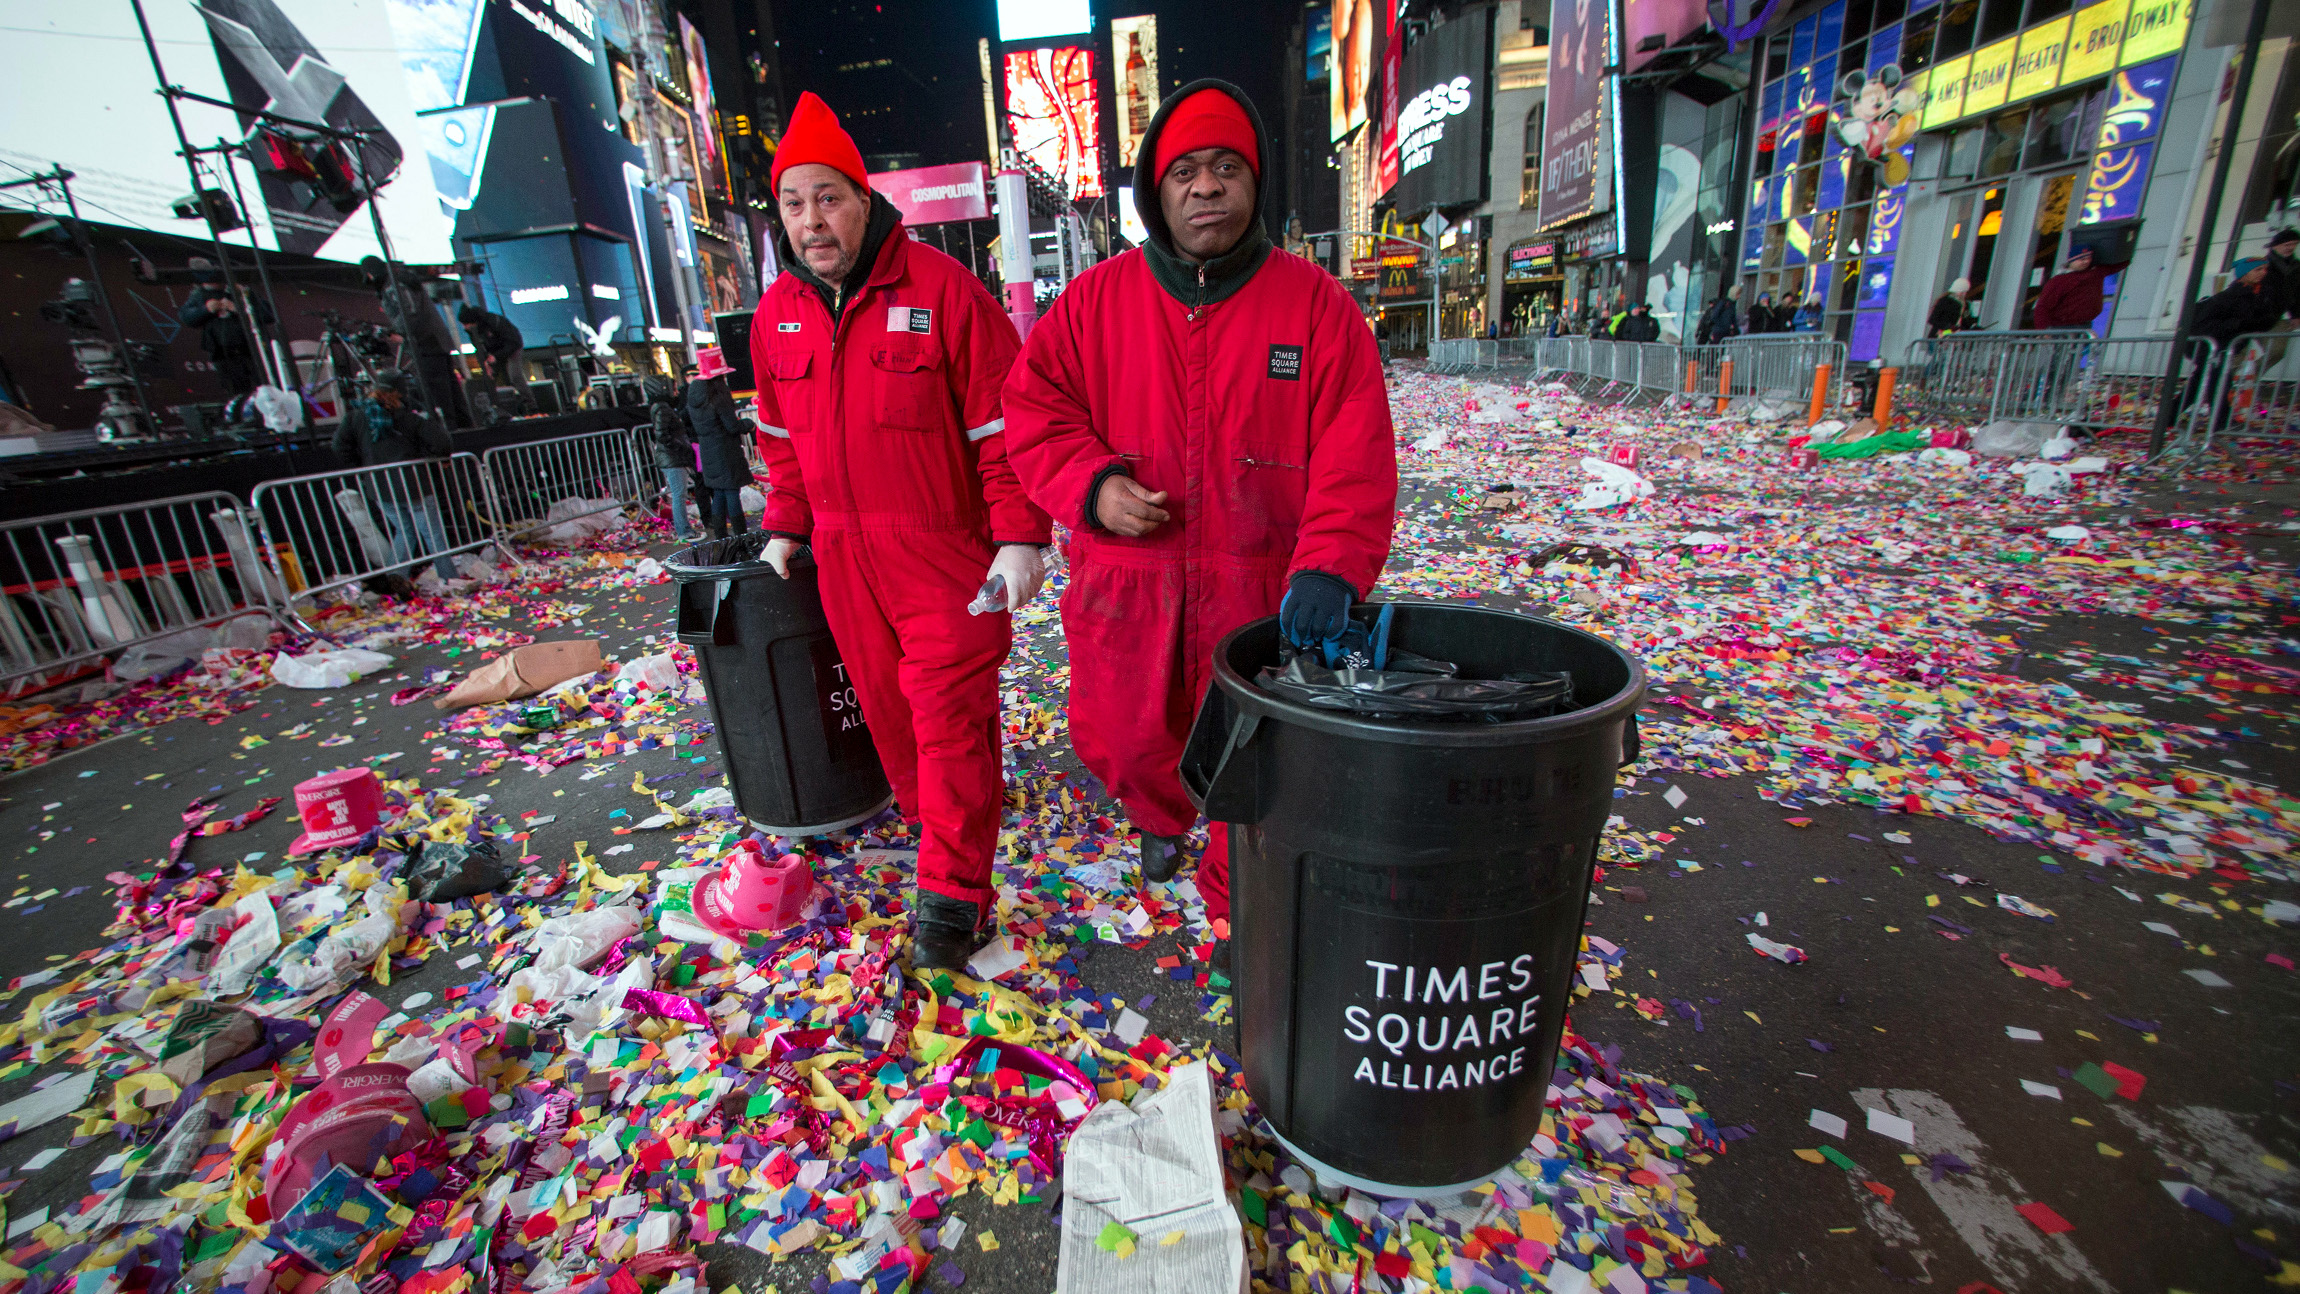 Workers prepare to clear confetti from the streets after New Year's Eve celebrations in Times Square, New York, January 1, 2015.